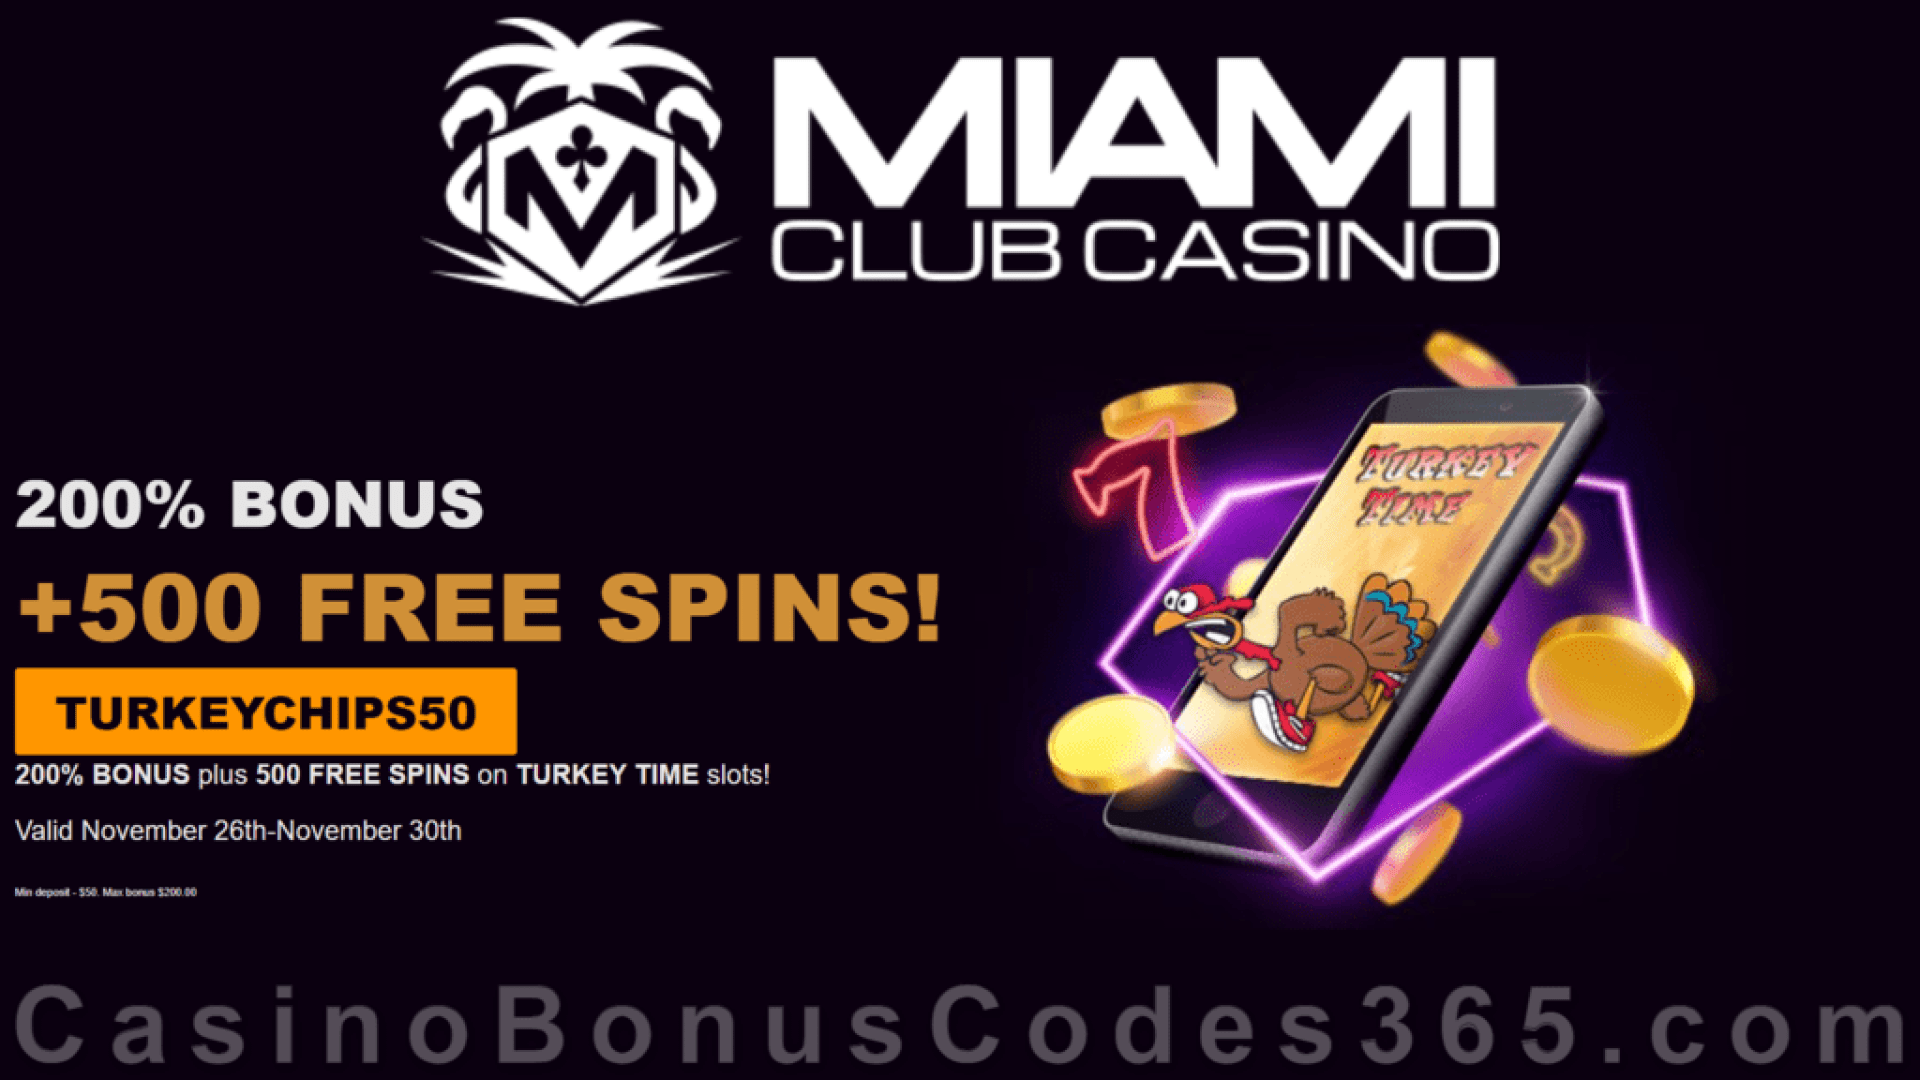 Miami Club Casino 200% Match plus 500 FREE Spins on RTG Turkey Time Thanksgiving Mega Deal